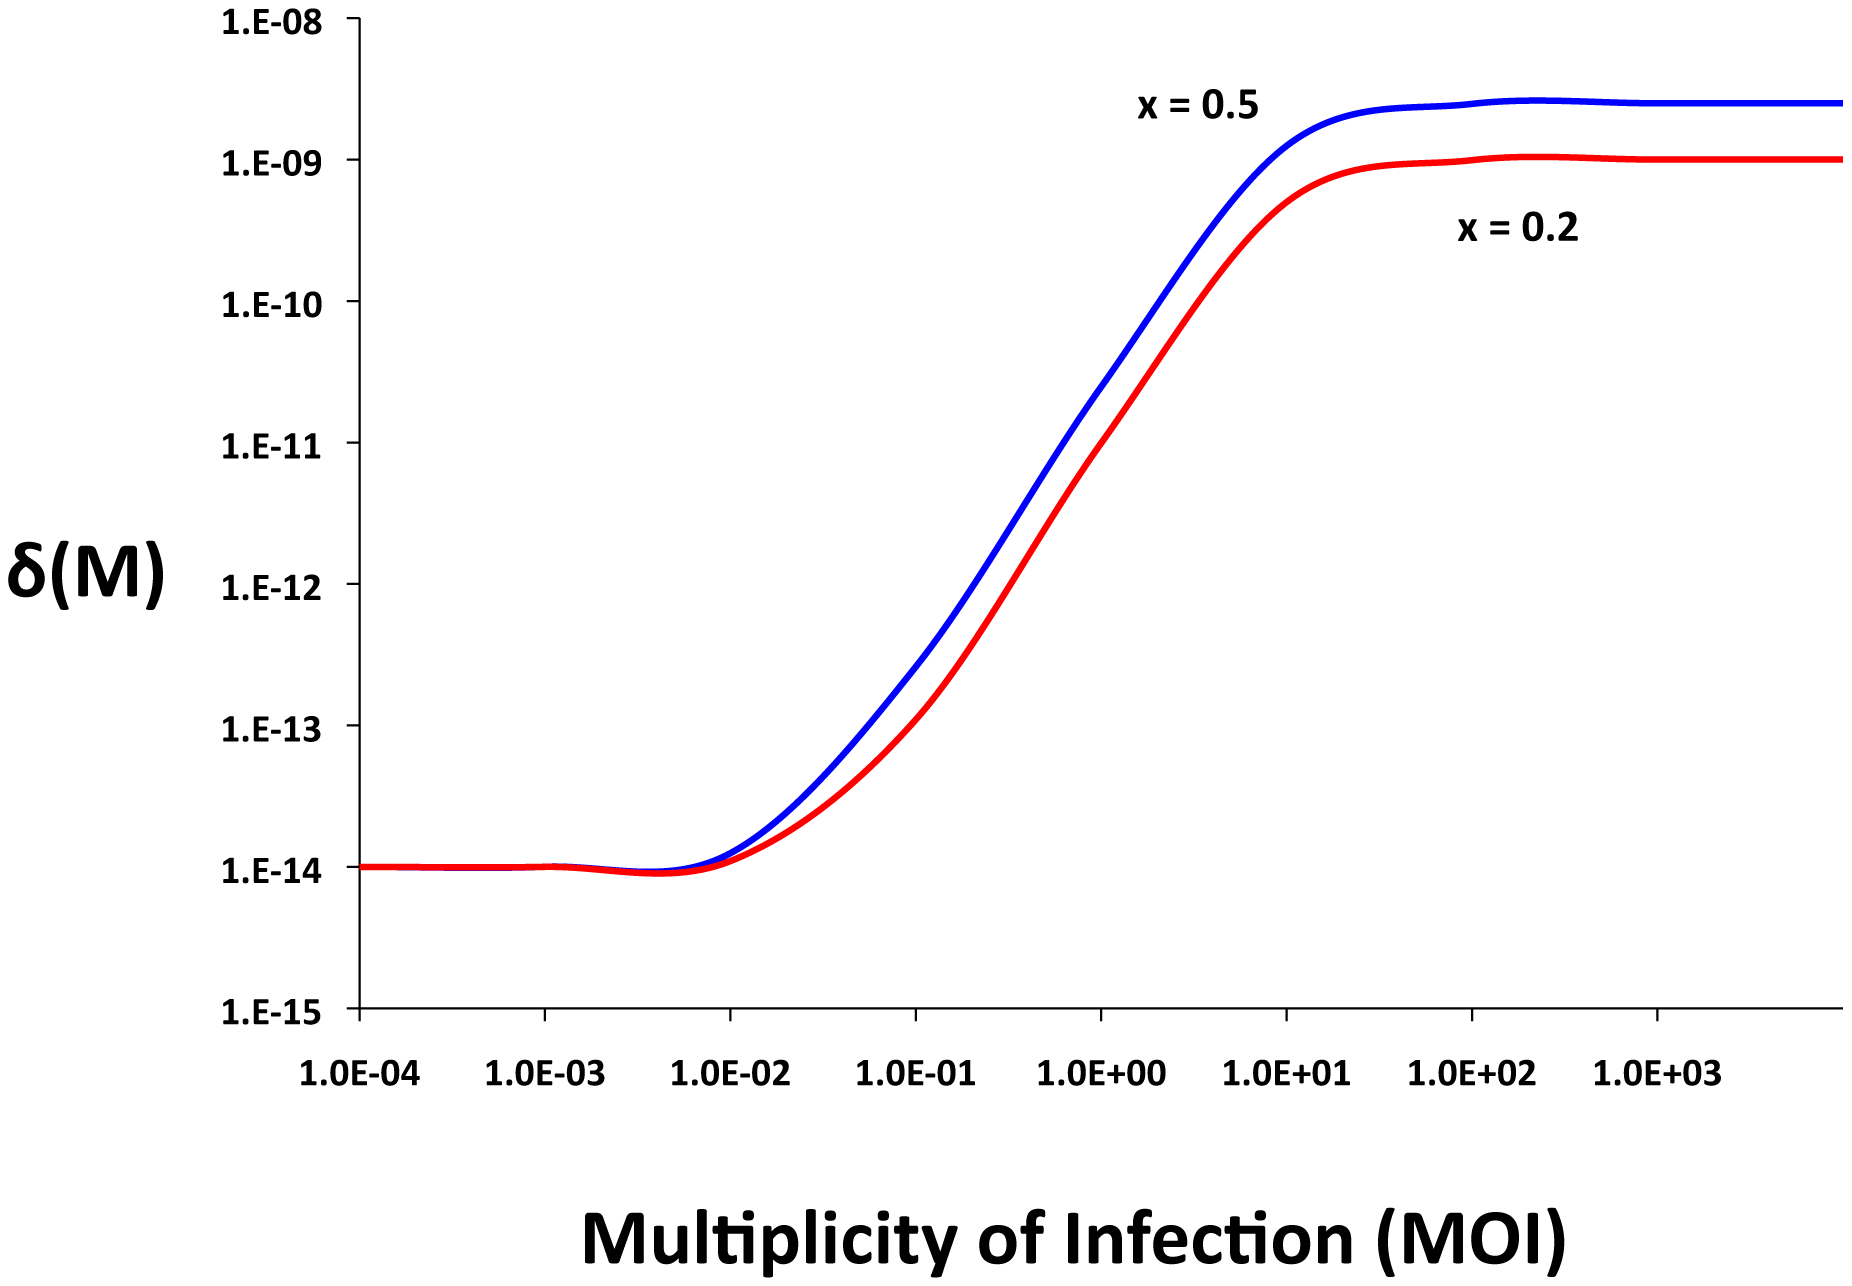 Adsorption rate as a function of the multiplicity of infection (MOI), δ<sub>MIN</sub> = 10<sup>−14</sup>, δ<sub>MAX</sub> = 5×10<sup>−9</sup>, <i>x</i> = 0.5, or x = 0.2 <i>q</i> = 10<sup>2</sup>, and <i>n</i> = 2.